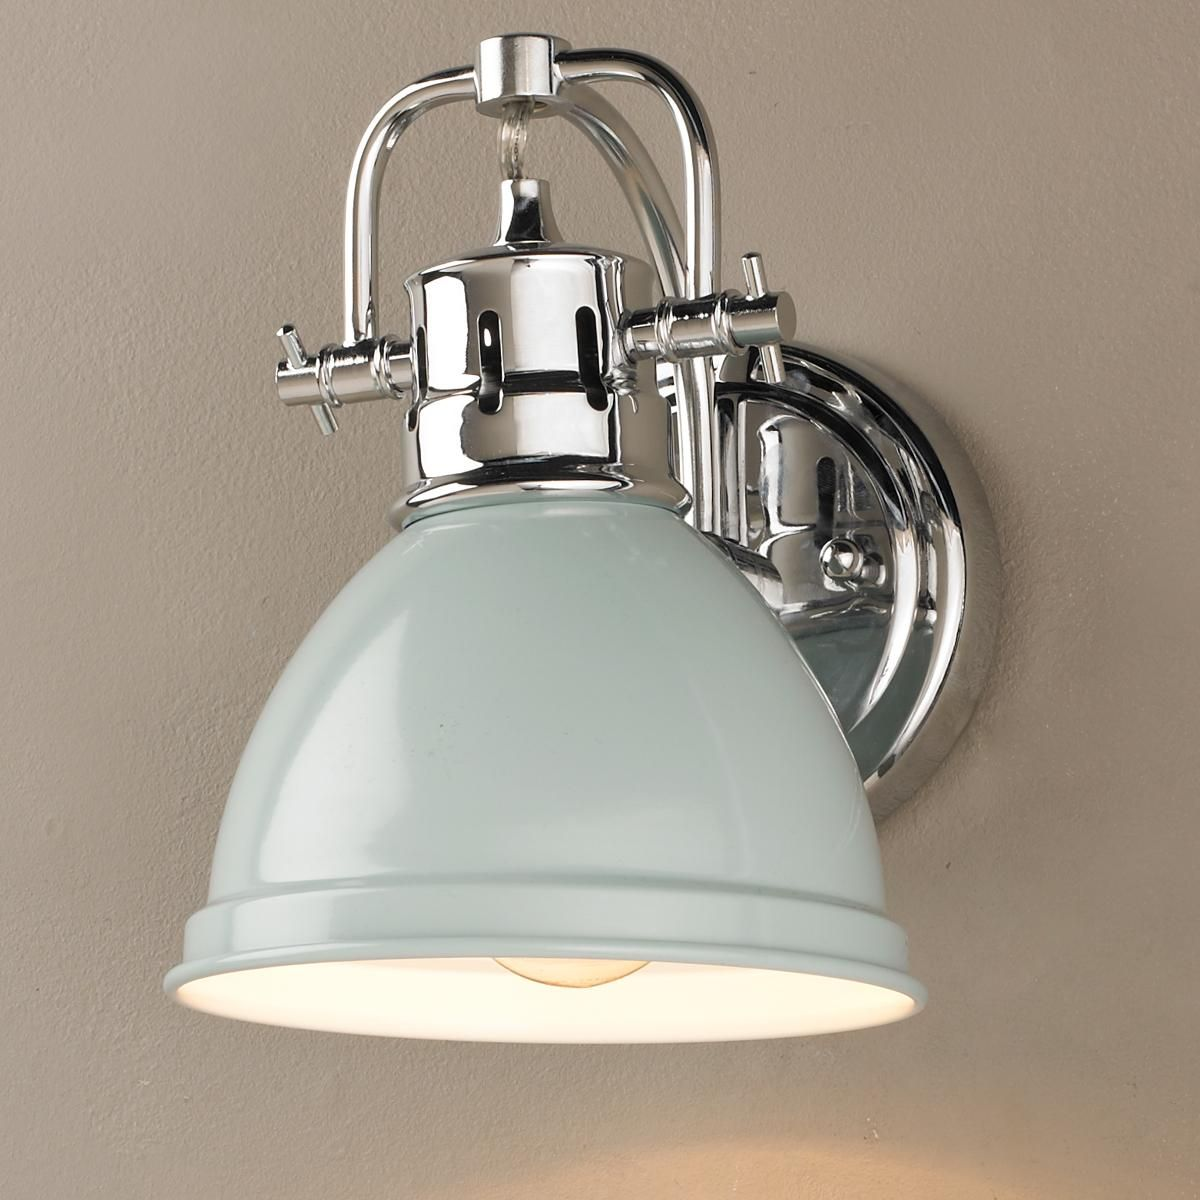 Classic Dome Shade Bath Sconce  Schoolhouse is in session